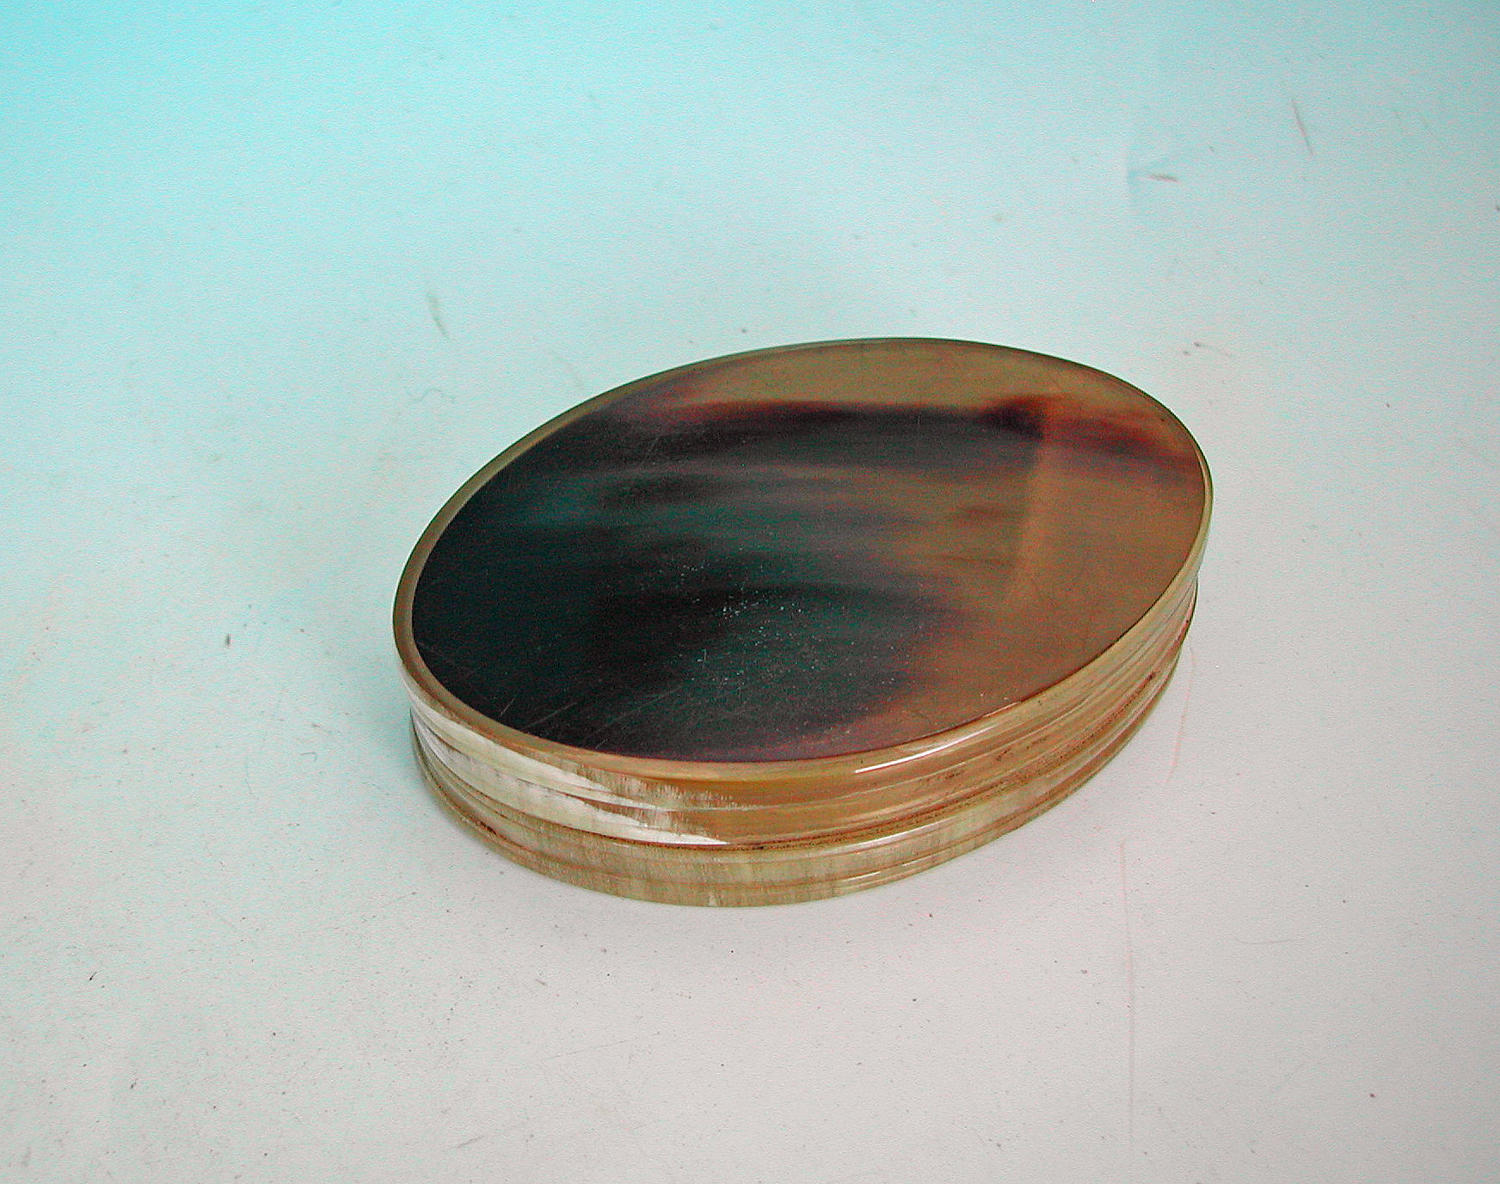 Antique 19thc Scottish Cow Horn Snuff Box. C1860-80.